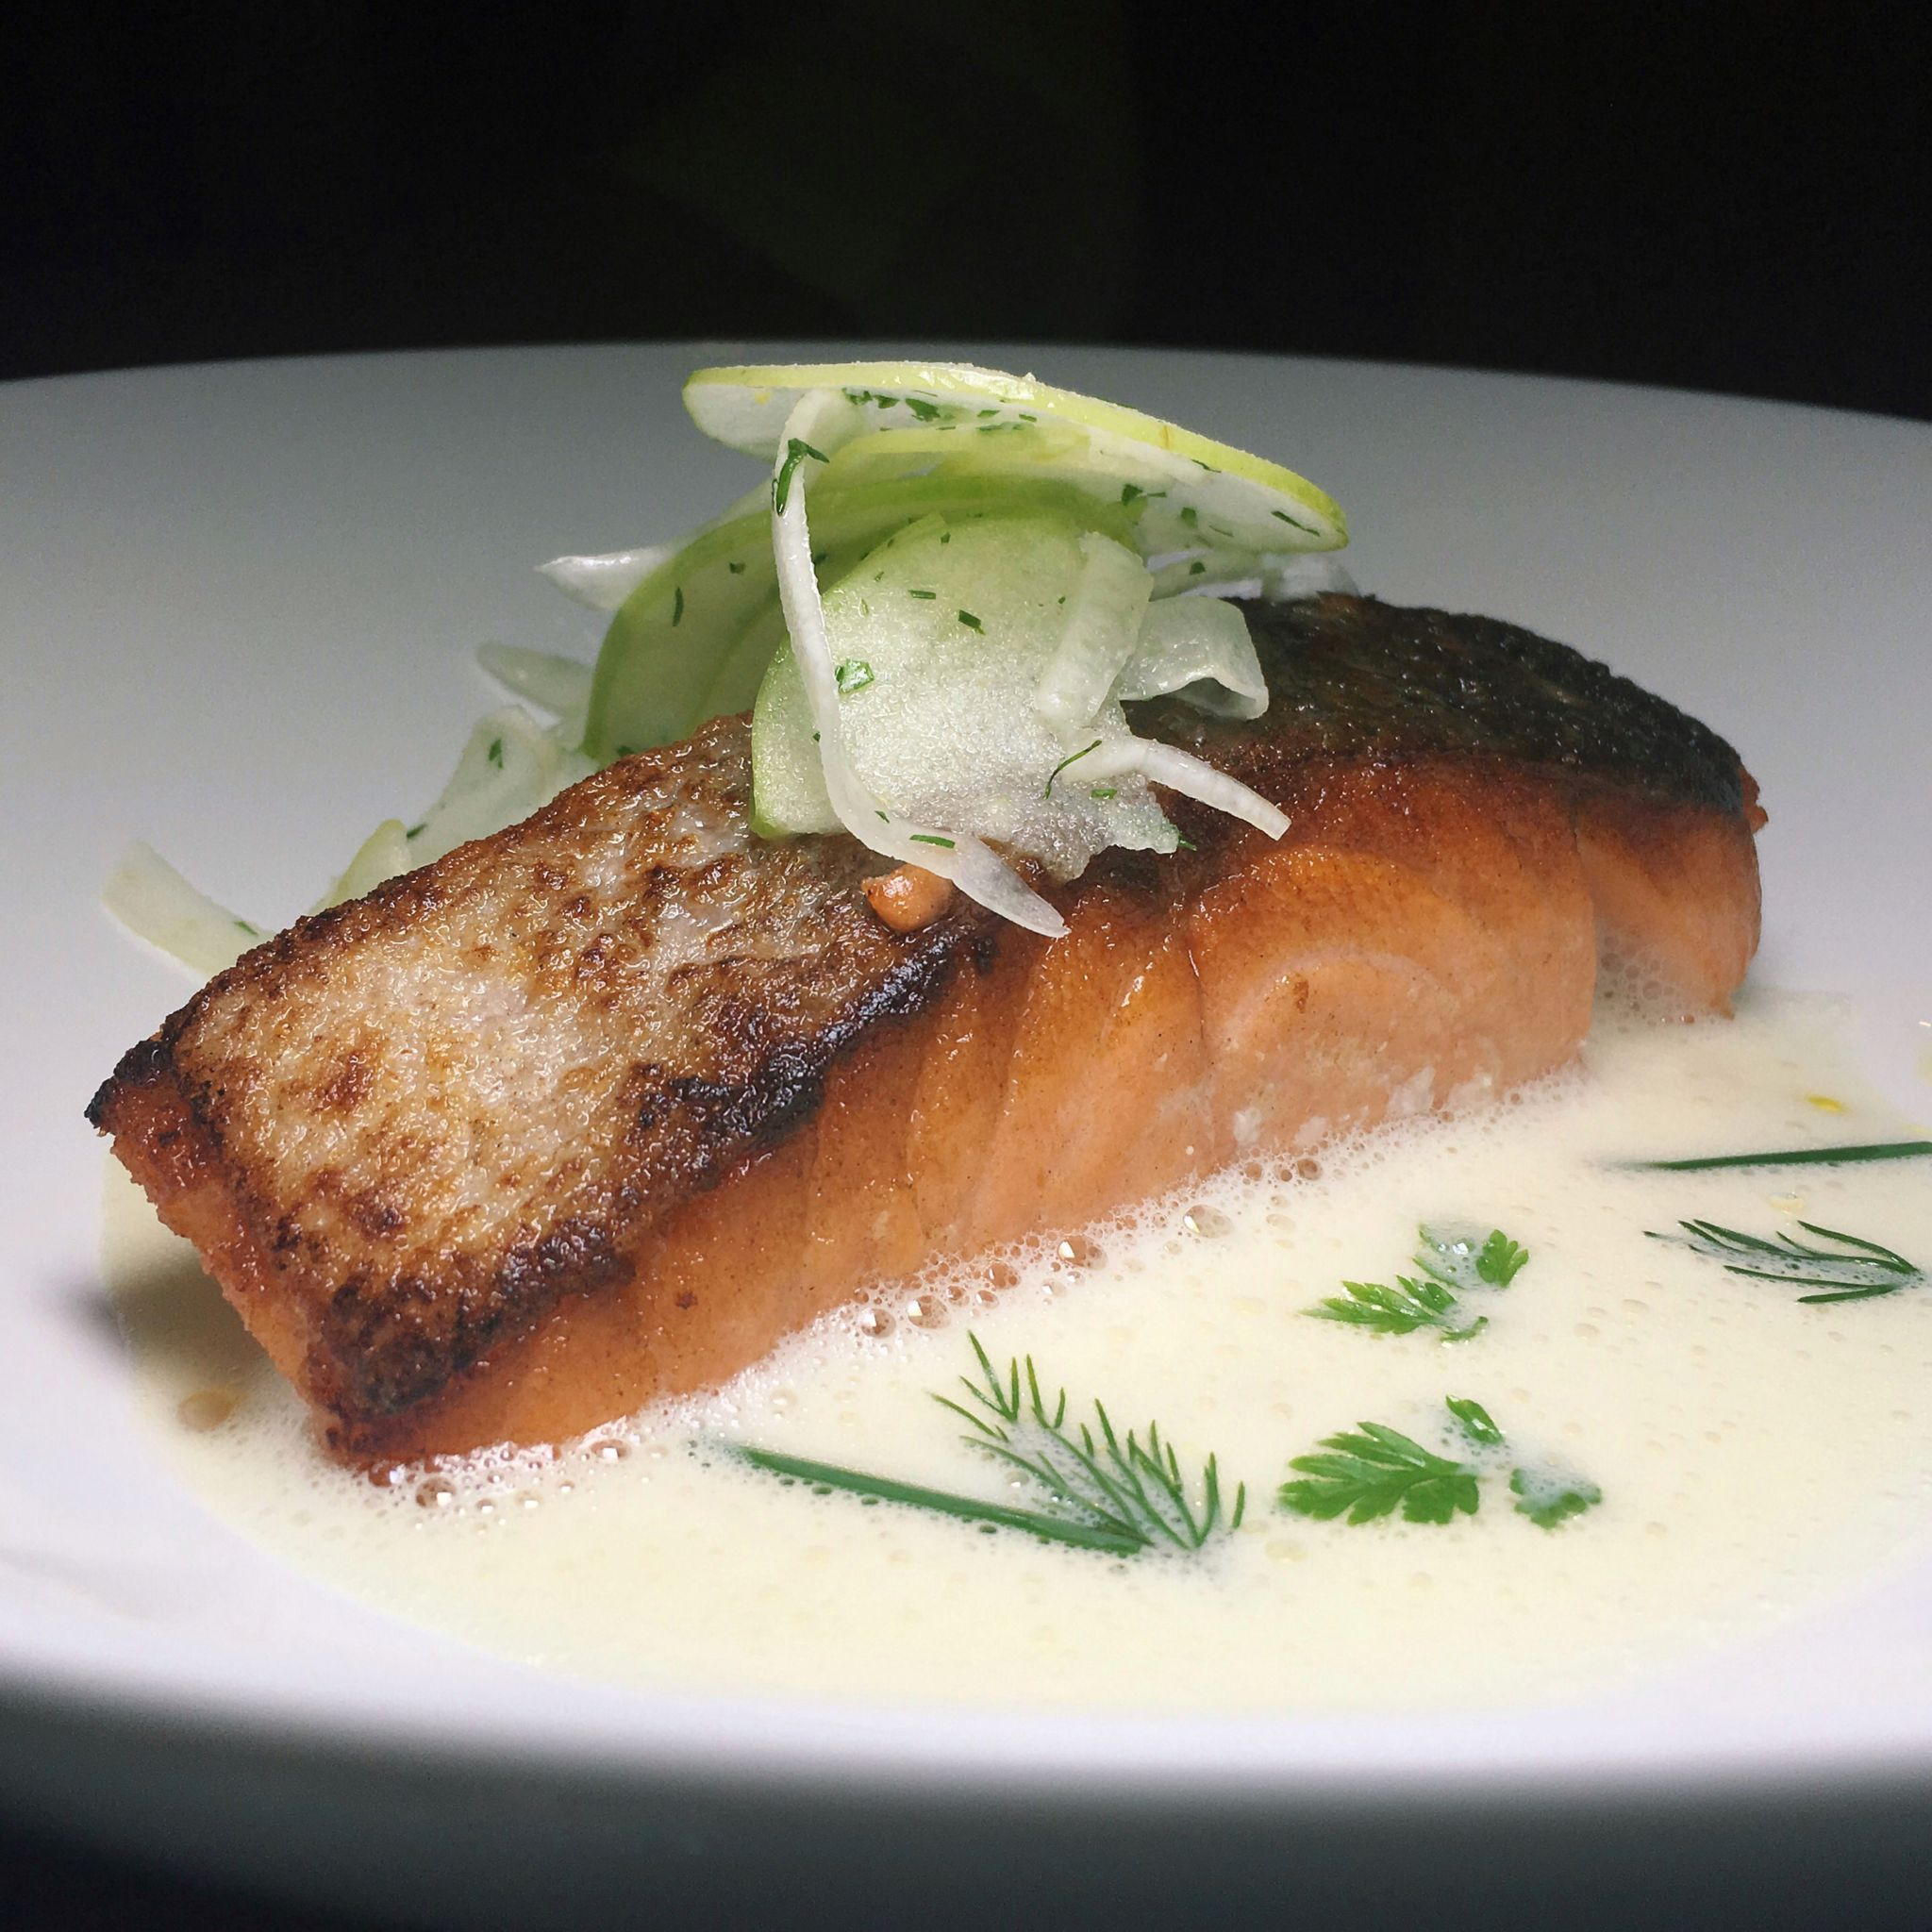 Sous Vide Salmon with White Chocolate Hollandaise - Antoinette